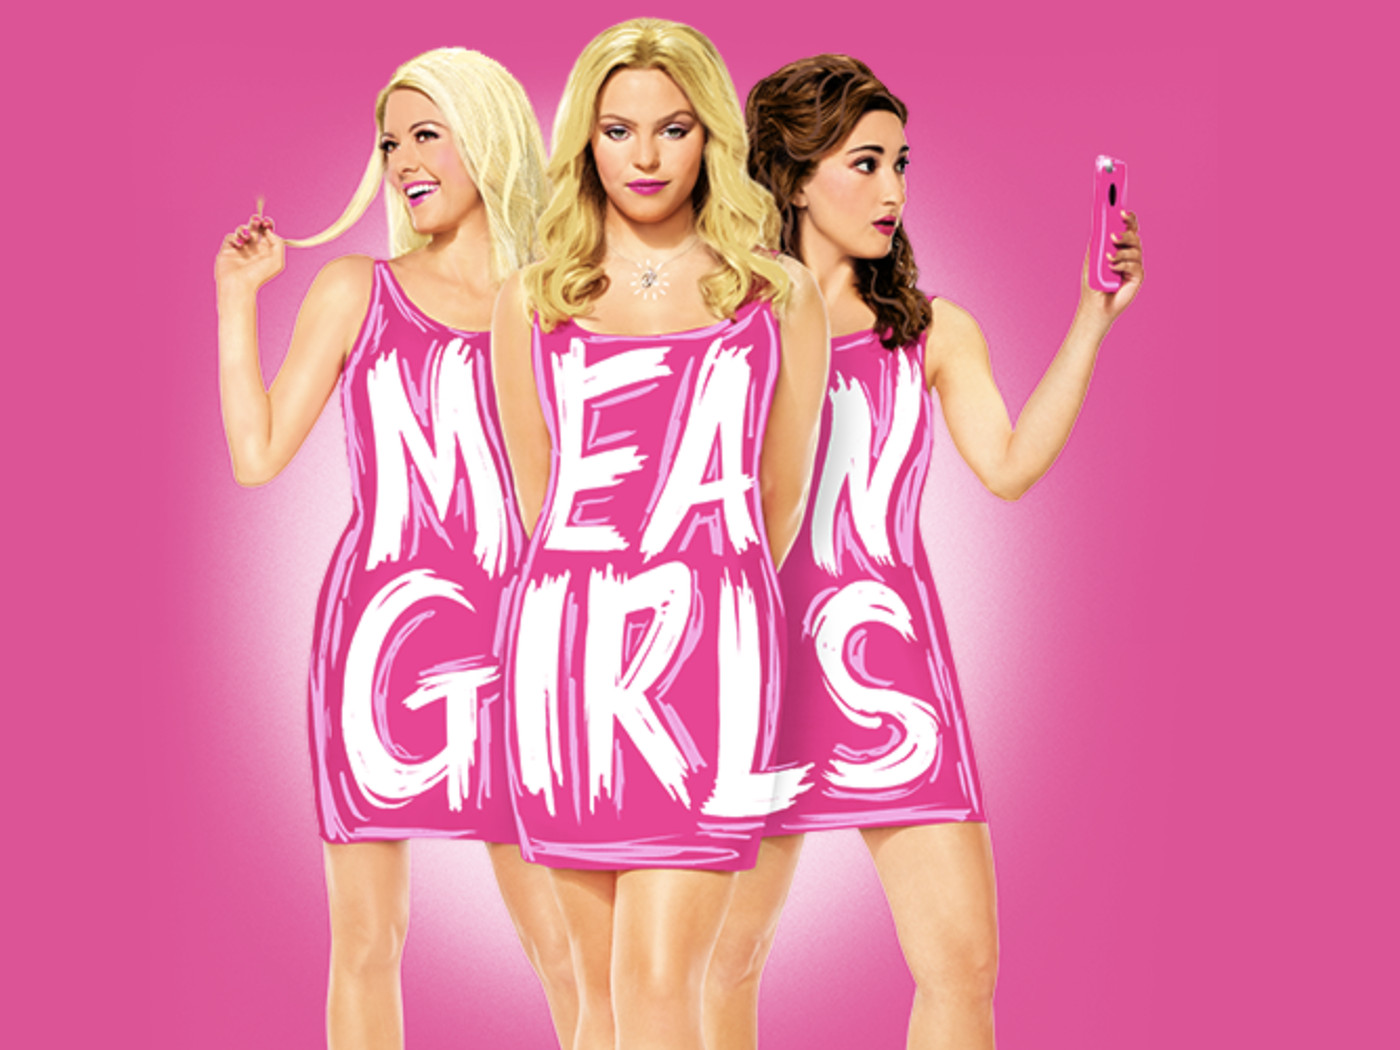 Mean Girls Channels Street Fighter The Movie The Game As Culture Becomes A Ouroboros Of Remakes The Verge